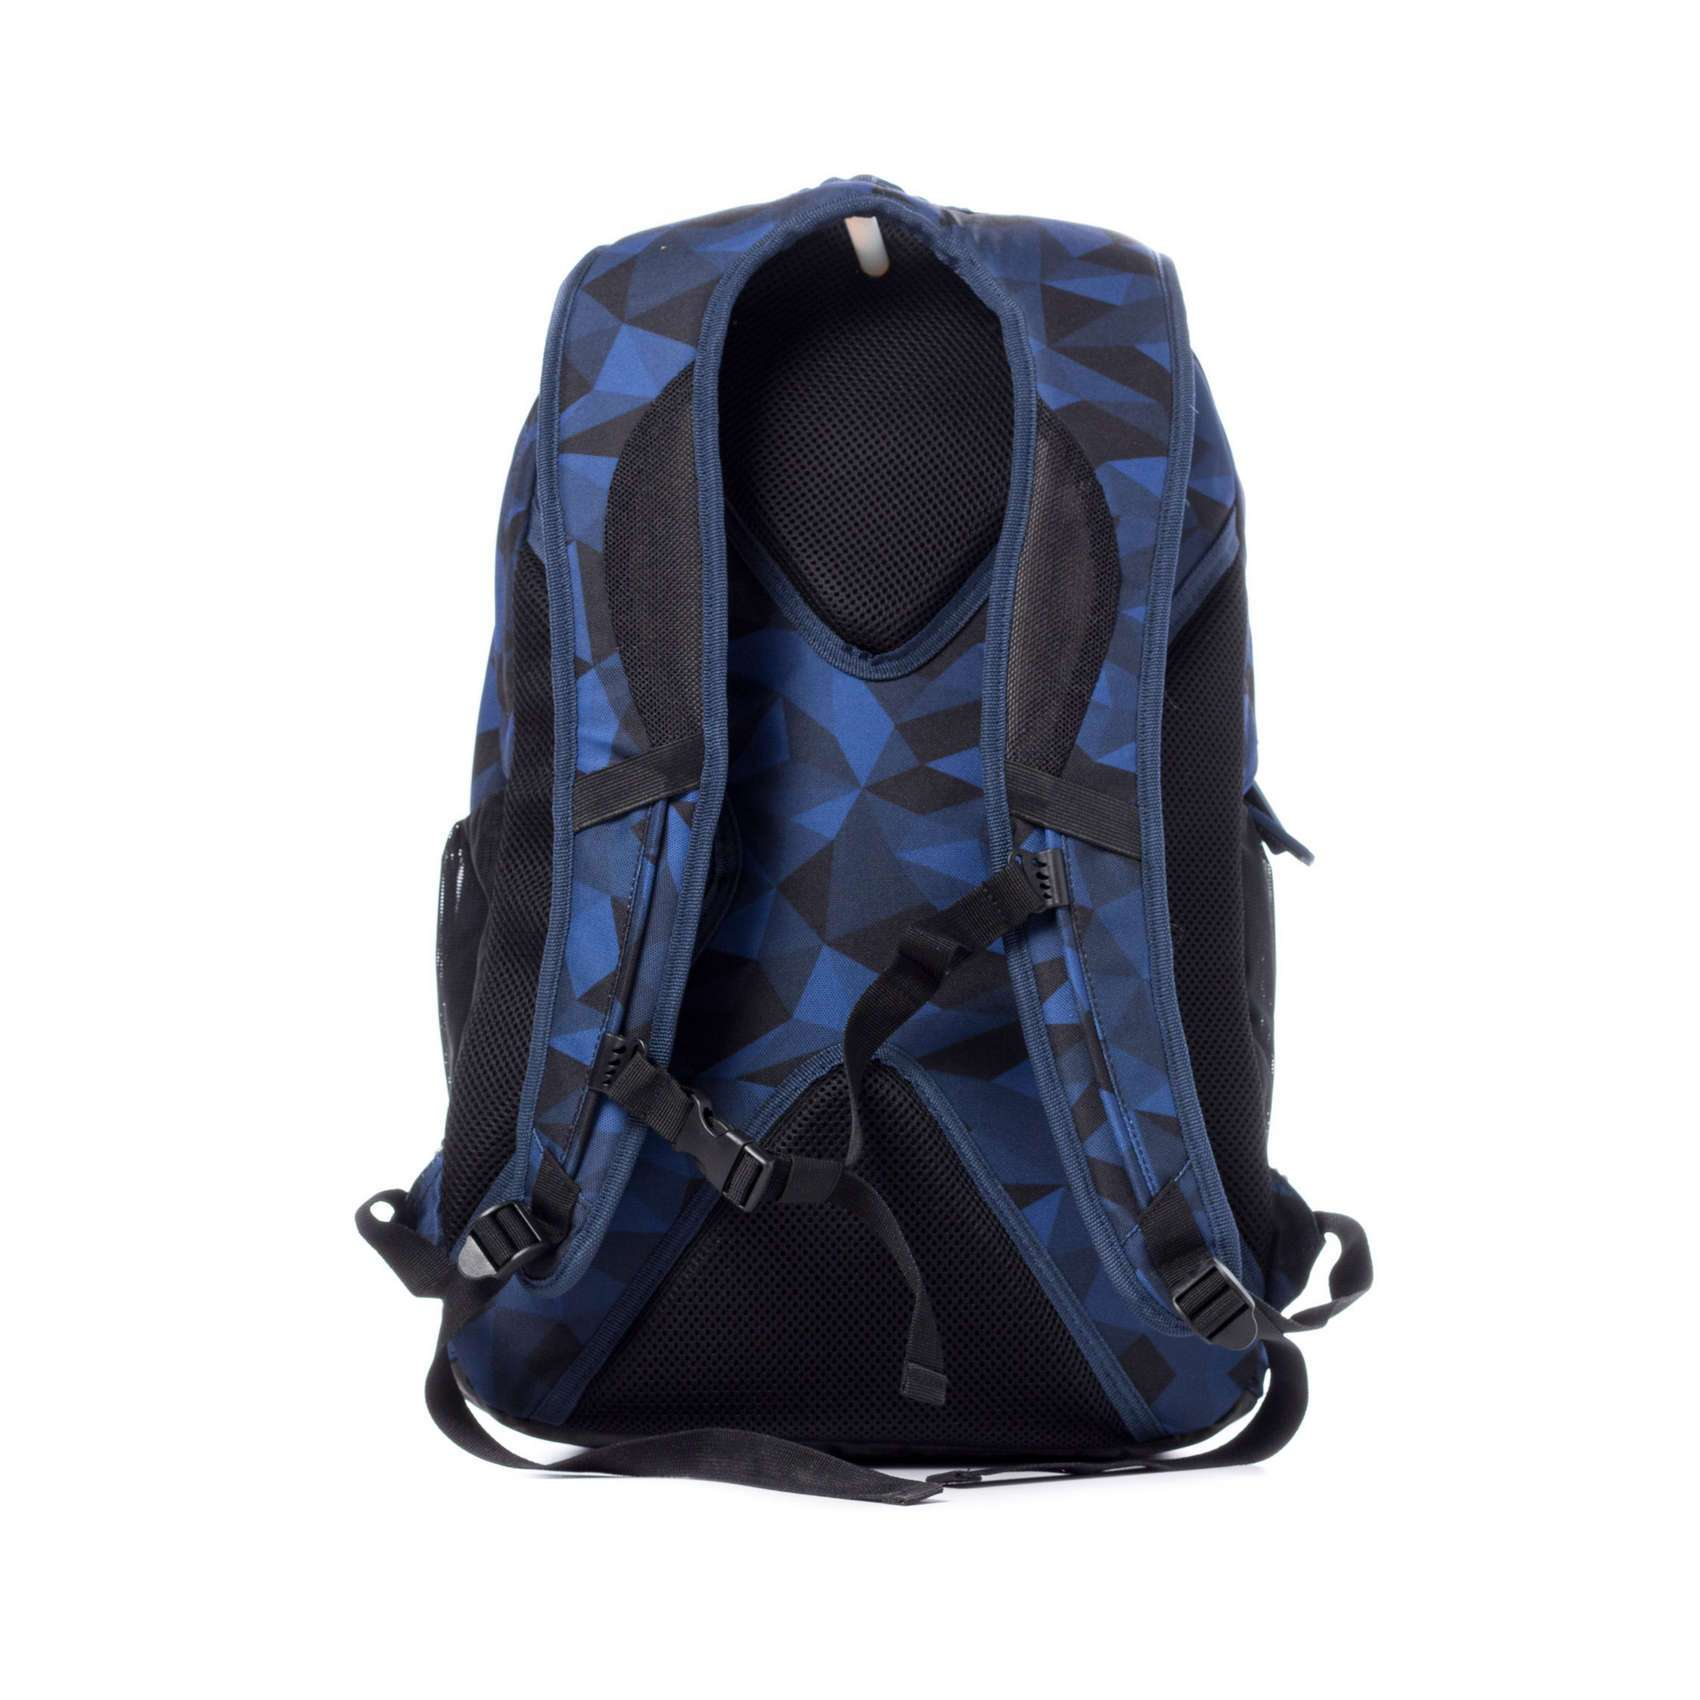 PAD BACKPACK 7011832